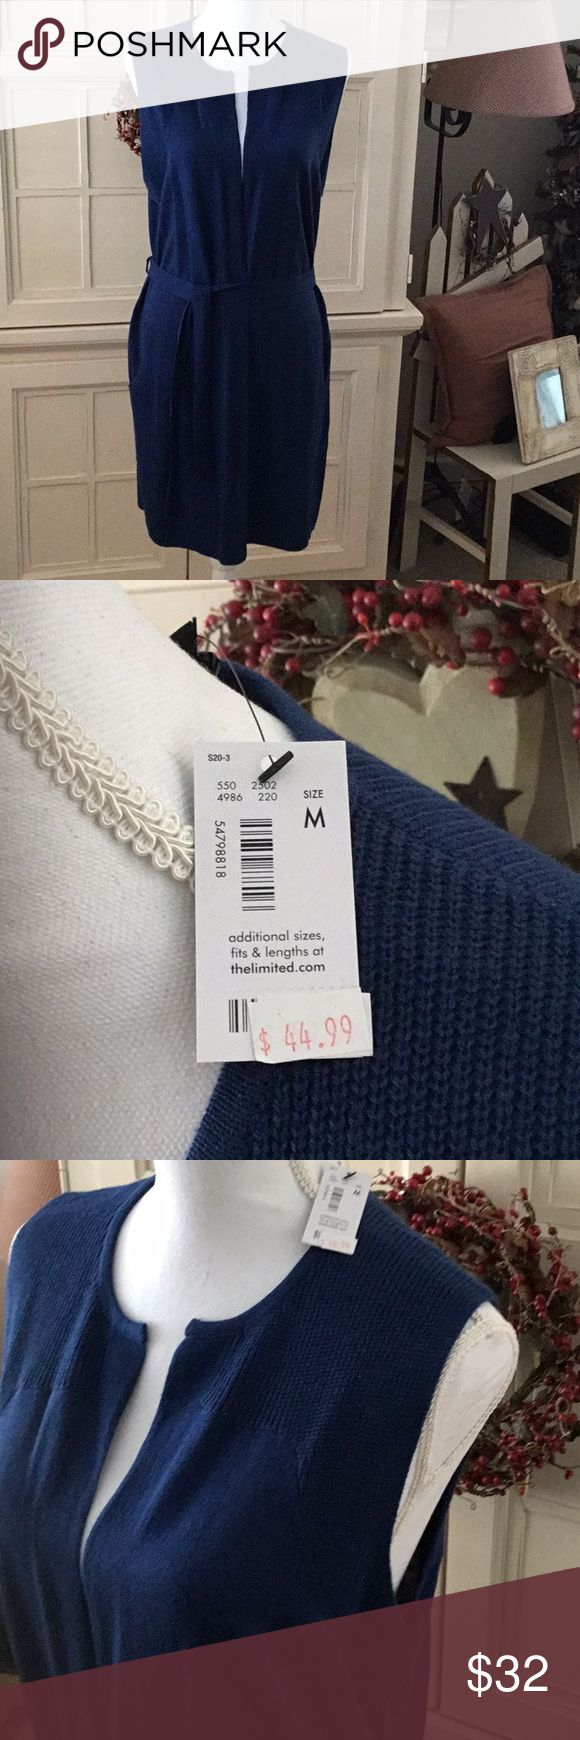 💕 The Limited Long Sleeveless Sweater Vest 💕 NWT  The Limited Sleeveless Sweater vest is lightweight and flattering!   Ribbed side pockets and sash round waist. Very stylish for the office or to wear with jeans! The Limited Sweaters Cardigans